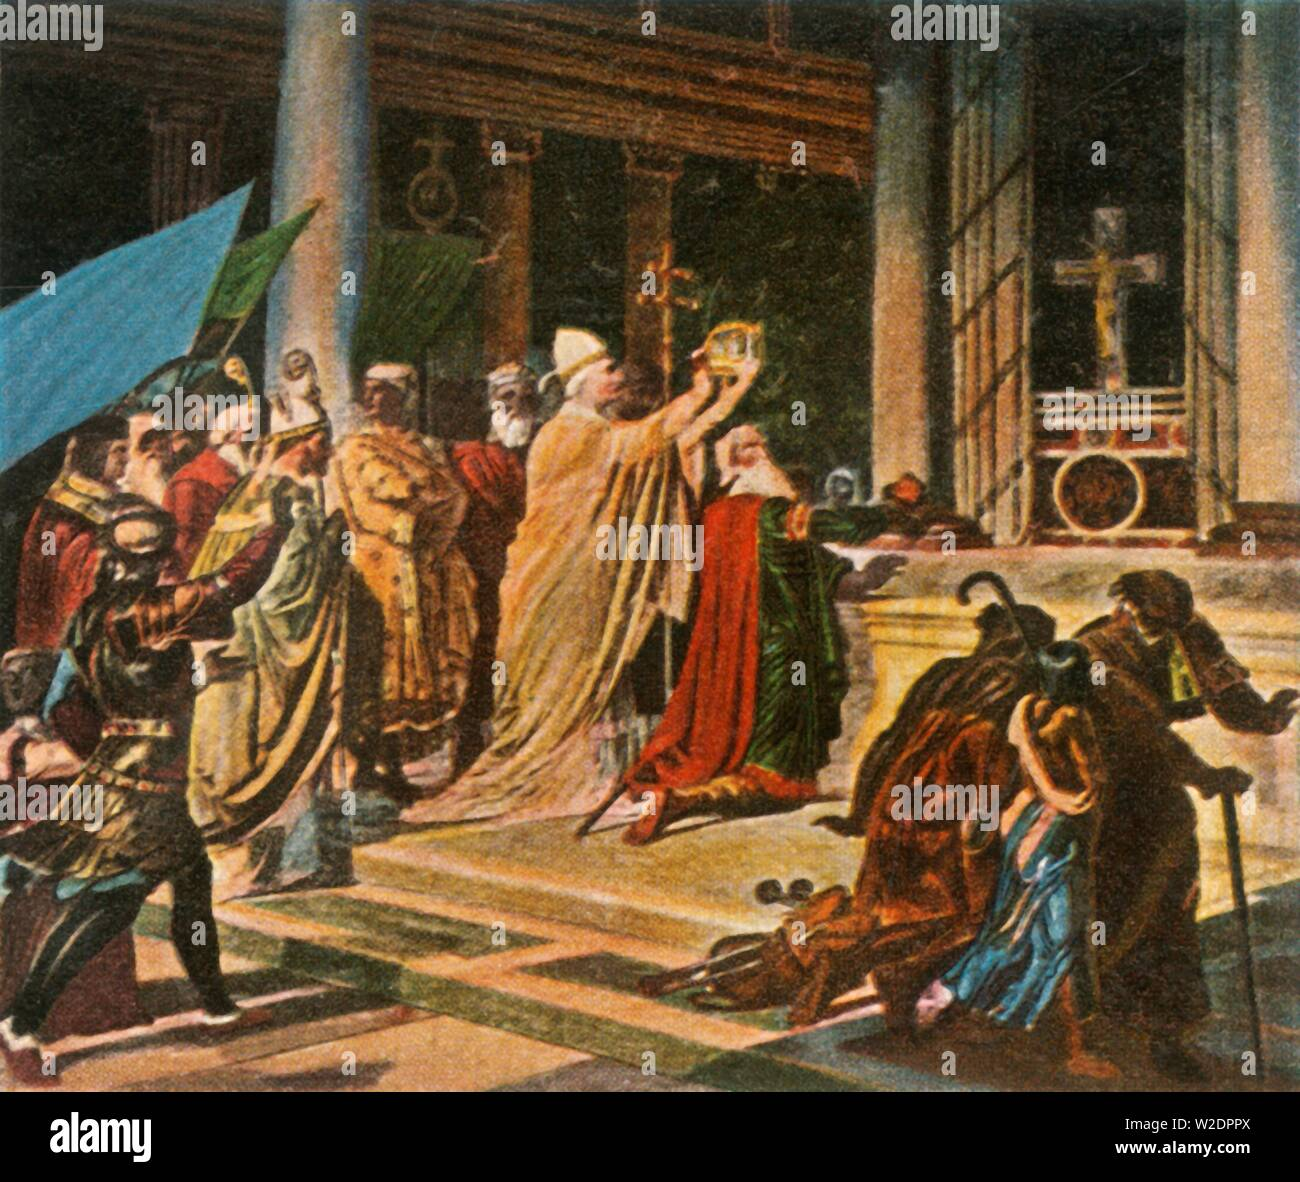 """Coronation of Charlemagne in Rome, Christmas Day, 800 AD, (1936). 'Krönung Karls Des Grossen in Rom, 25 Dezember 800'. Charlemagne, King of the Franks (742-814 AD), was crowned Holy Roman Emperor by Pope Leo III in Old St Peter's Basilica, Rome, Italy. From """"Bilder Deutscher Geschichte"""", (Pictures of German History), No.12, cigarette card album. [Cigaretten-Bilderdienst, Altona-Bahrenfeld, Hamburg, Germany, 1936] - Stock Image"""